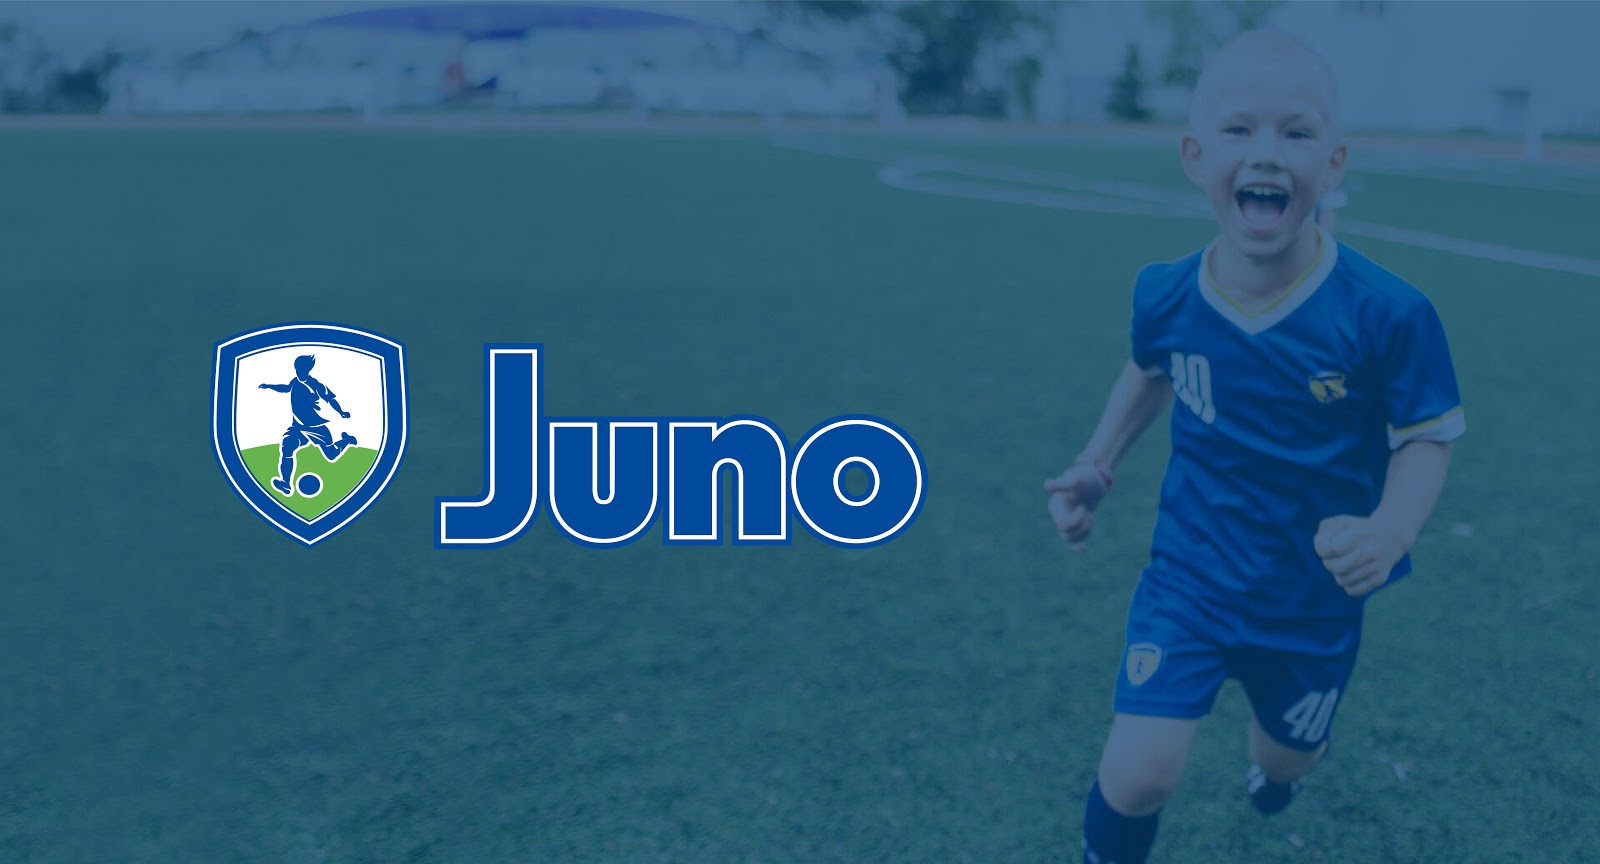 medium.com - Today JUNO Academy network is the widest franchise network of football academies for children